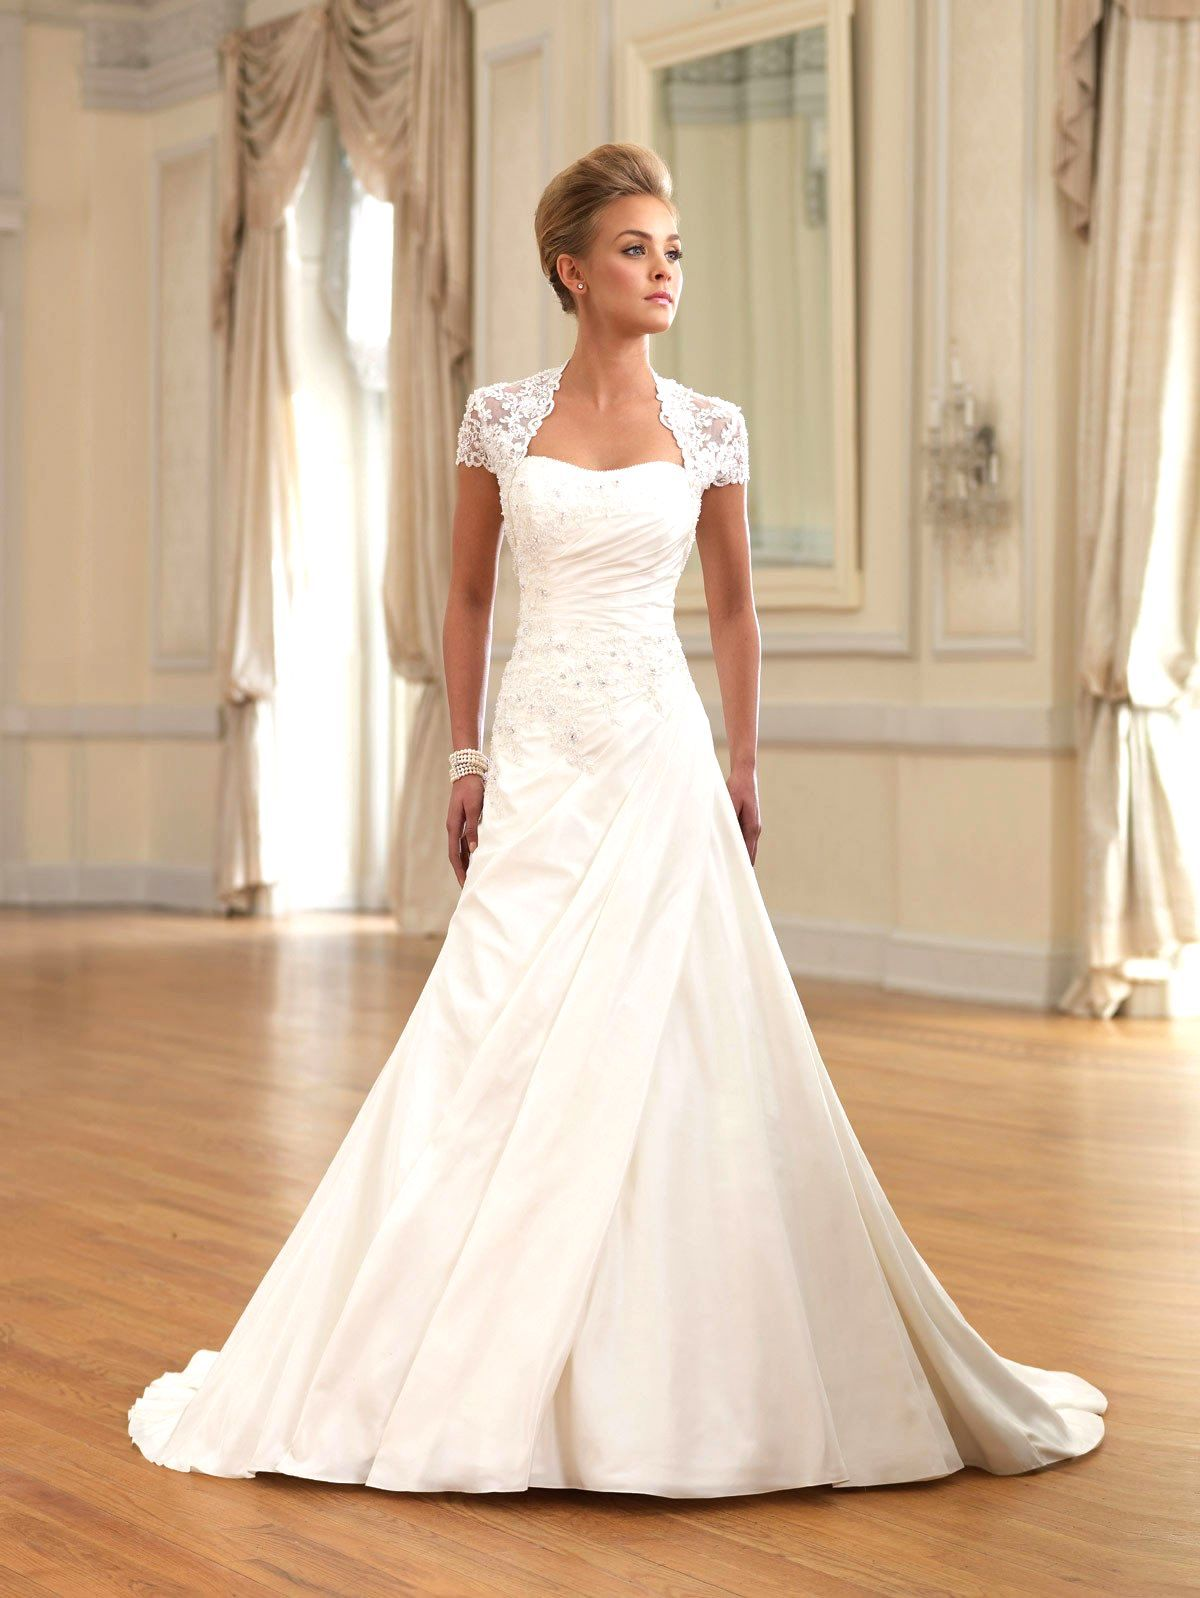 wedding dress for hourglass figure - Google Search | wedding dress ...